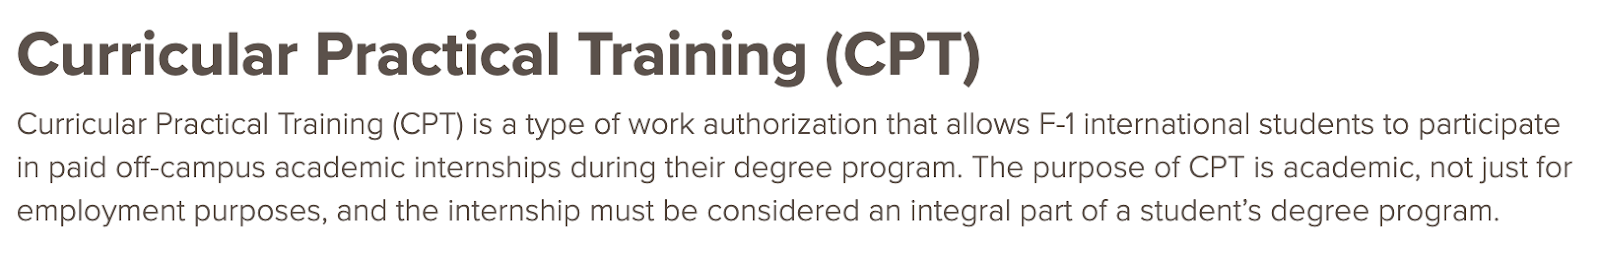 cpt definition